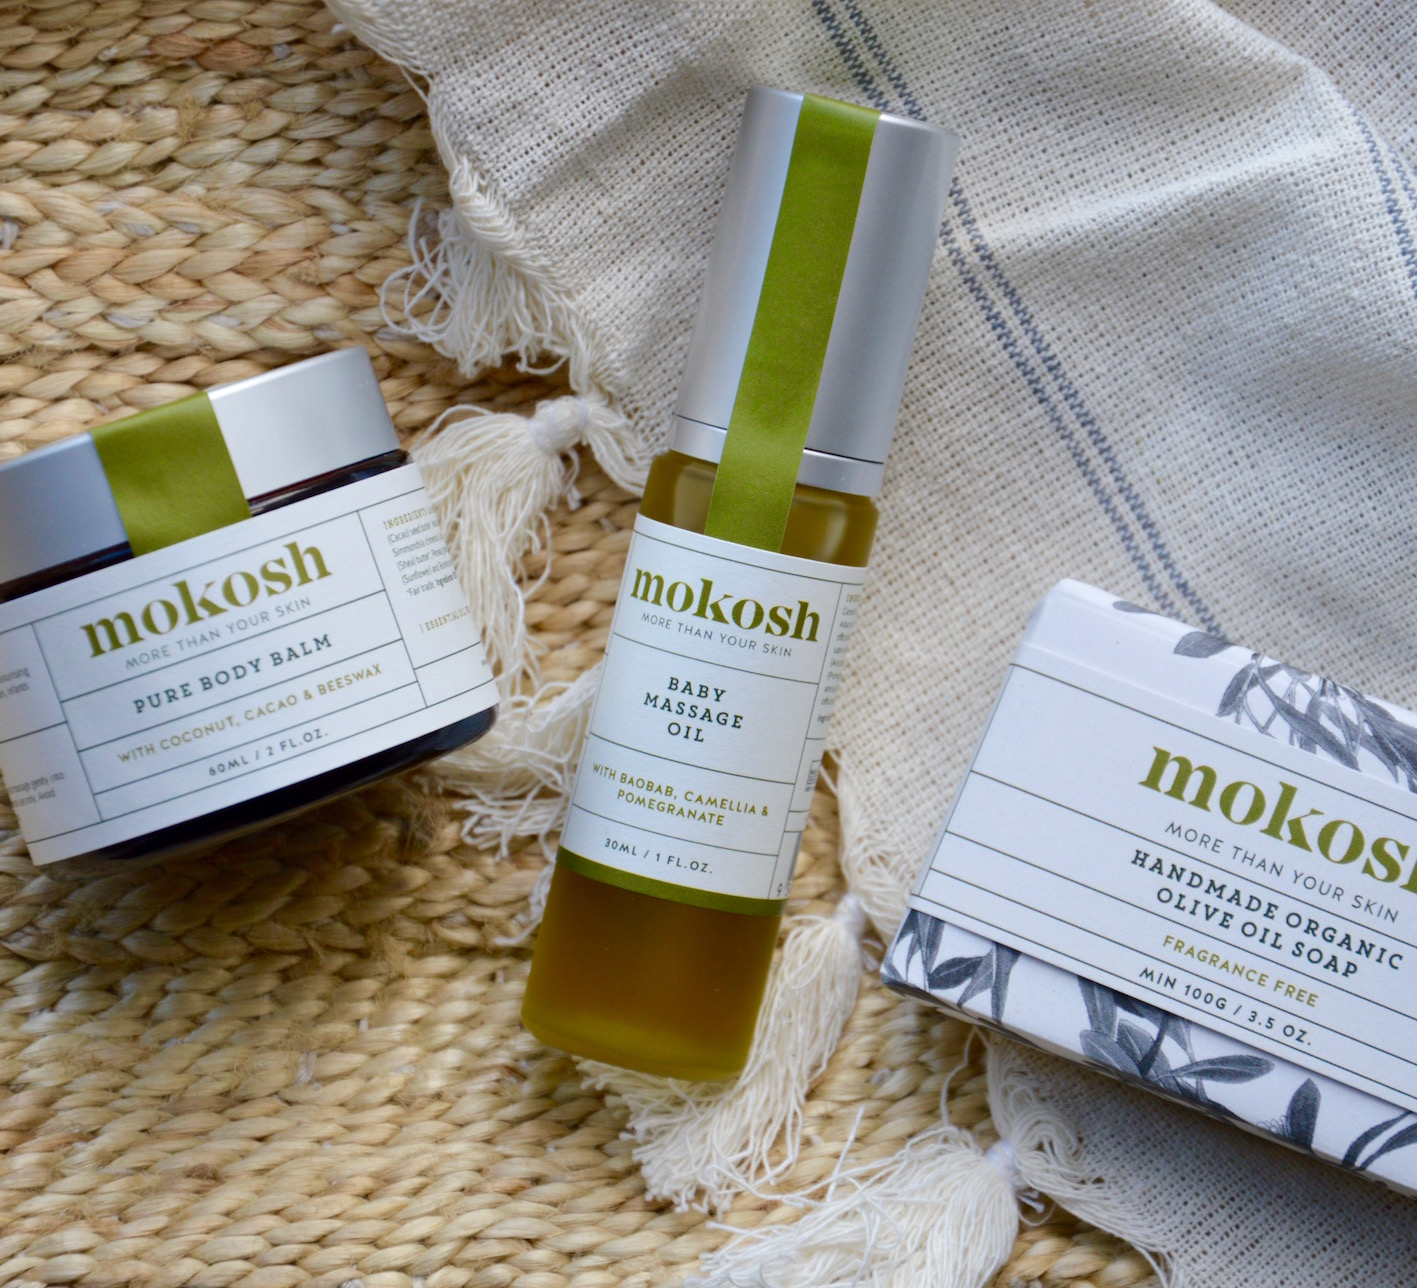 Our certified organic Baby Massage Oil completes our baby range - now we have all you need to care for your baby's skin.